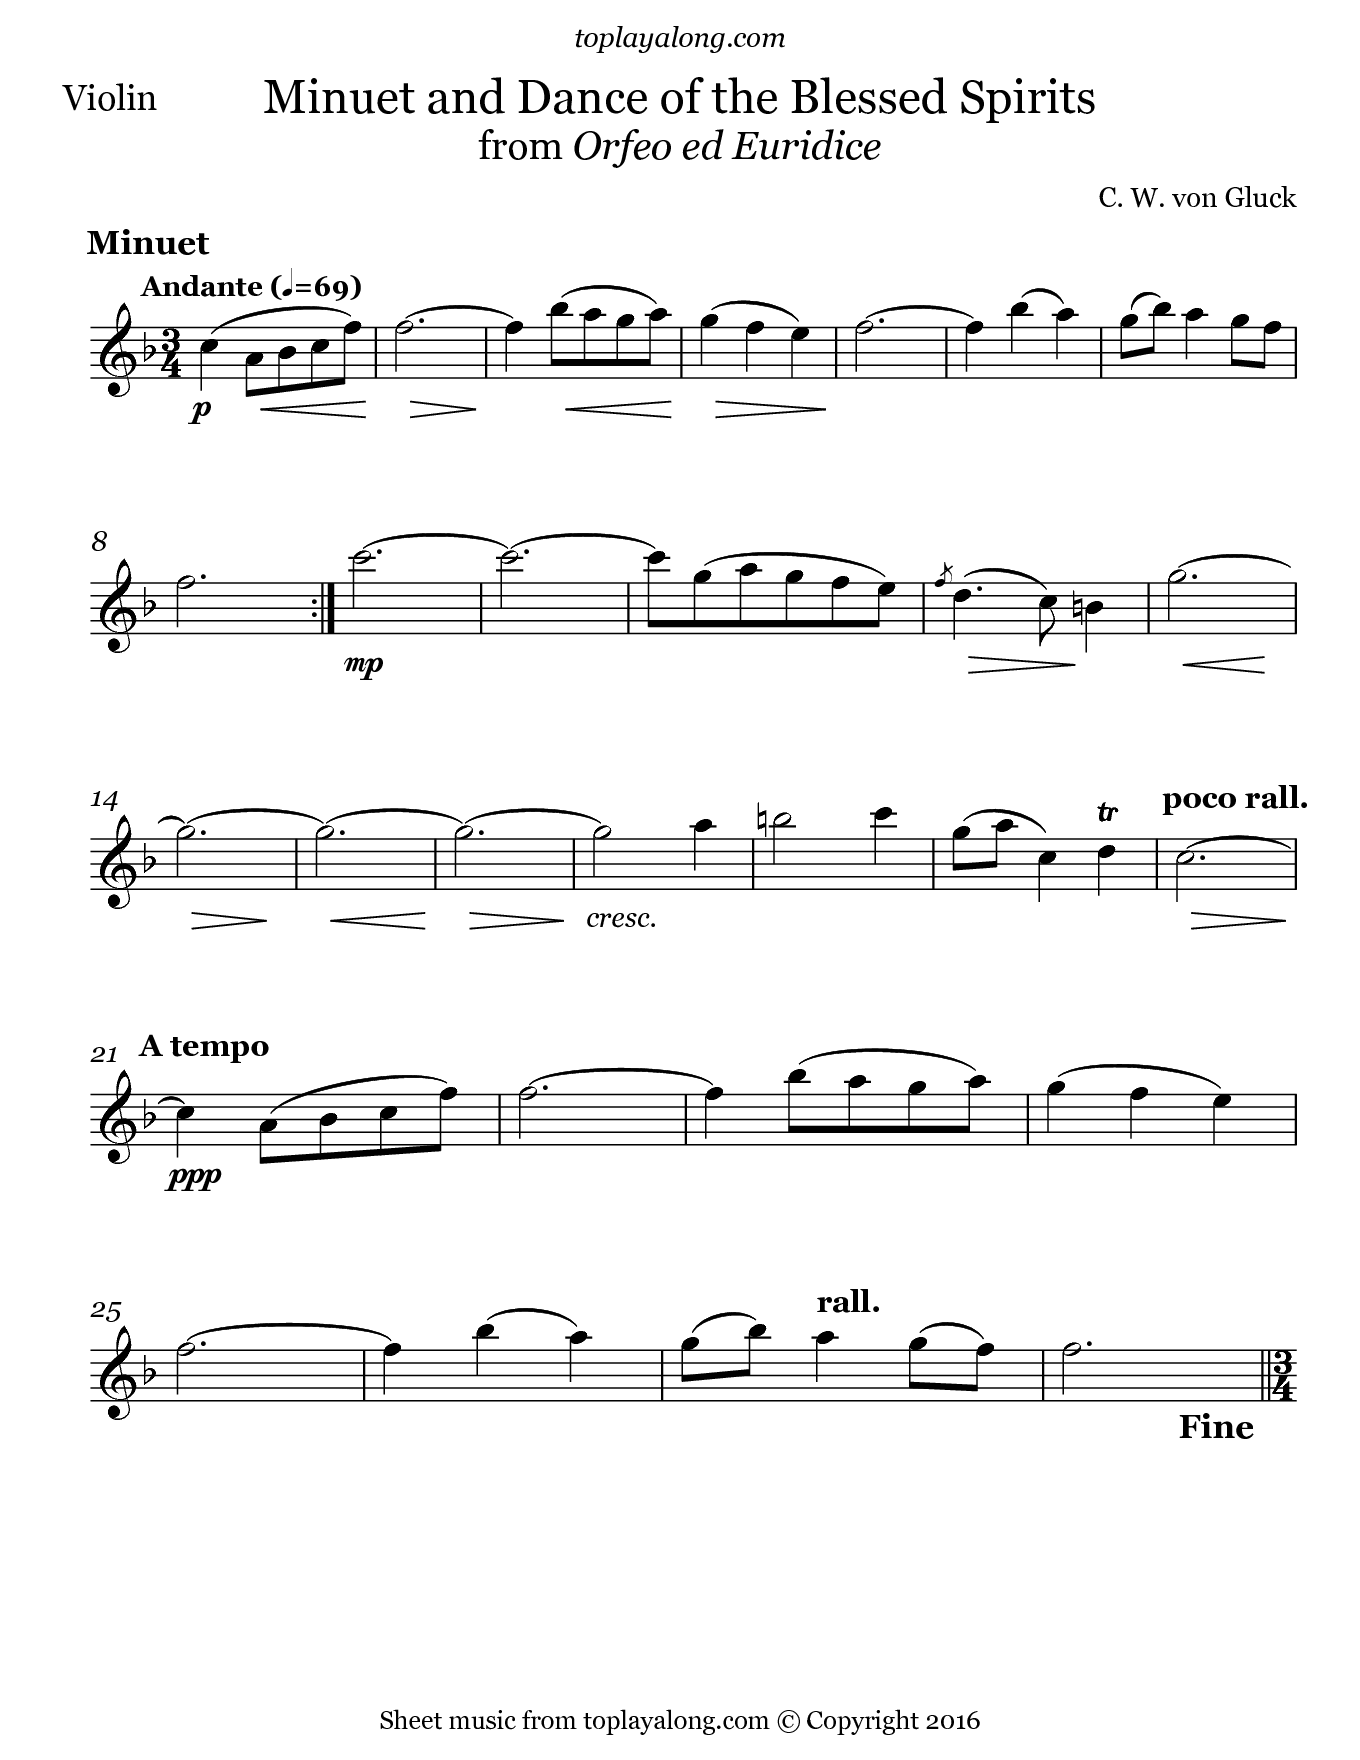 Dance of the Blessed Spirits by Gluck. Sheet music for Violin, page 1.